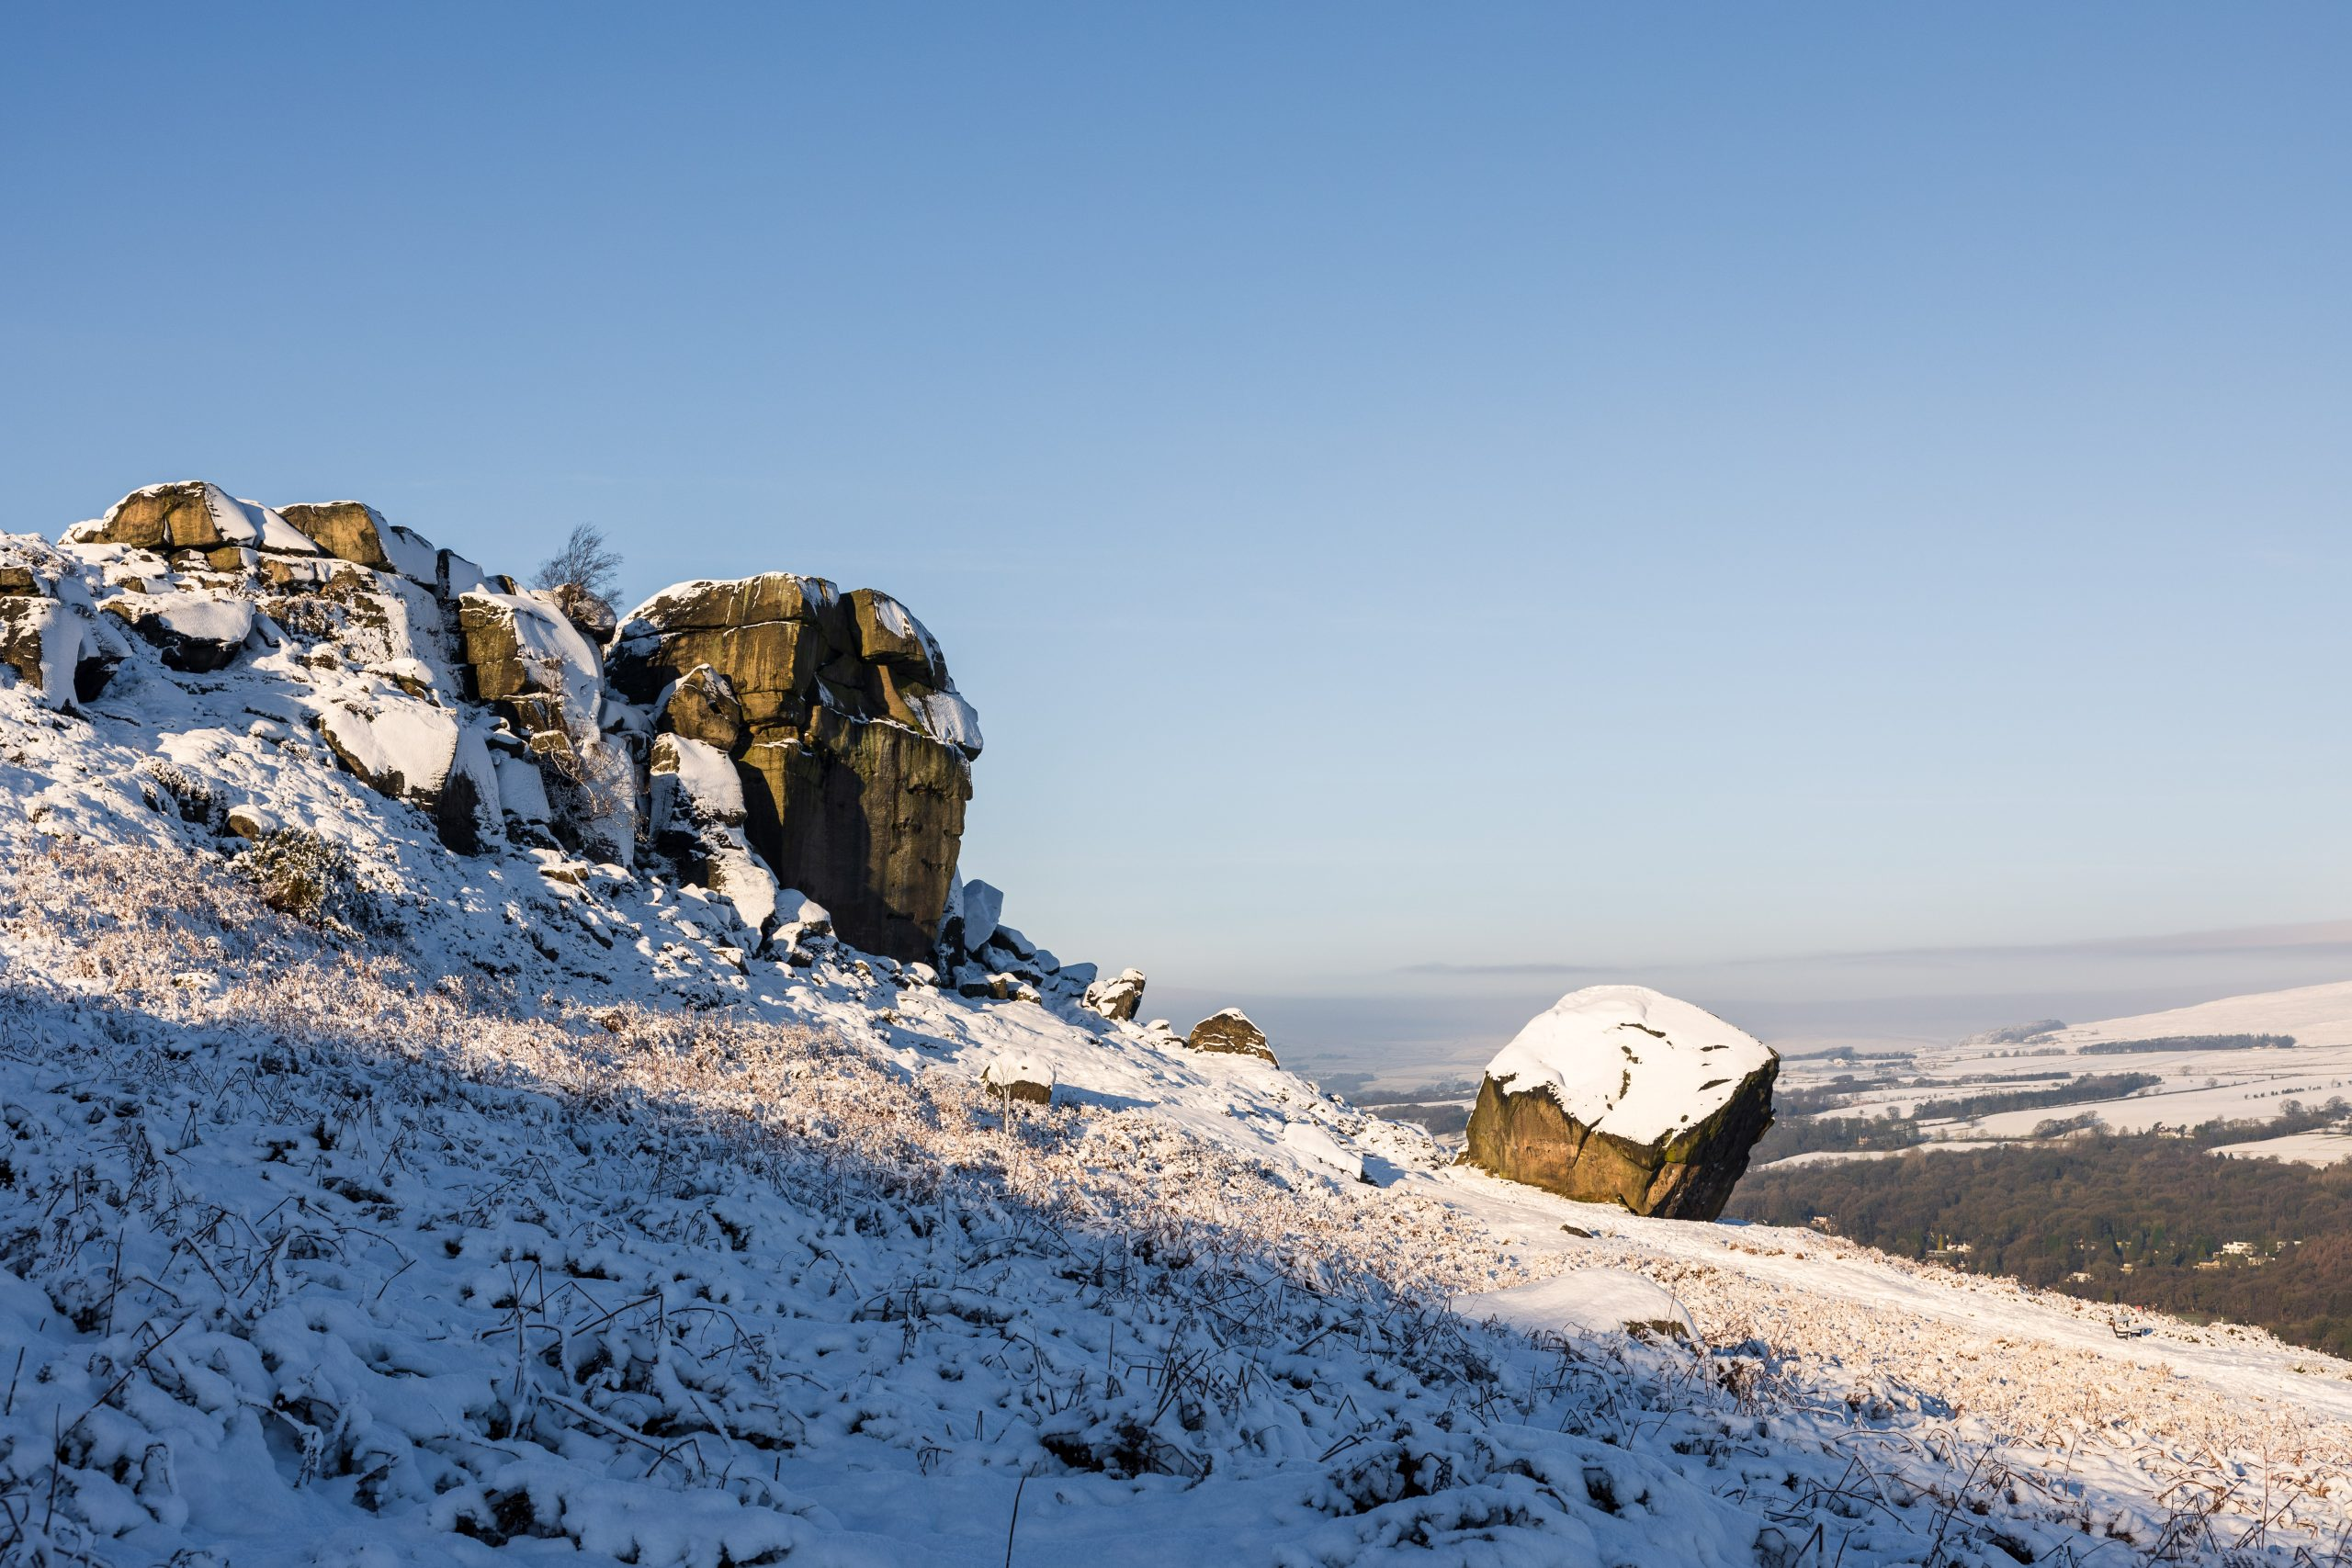 The Cow and Calf Rocks, Ilkley Moor - one of the iconic views of the Yorkshire Dales